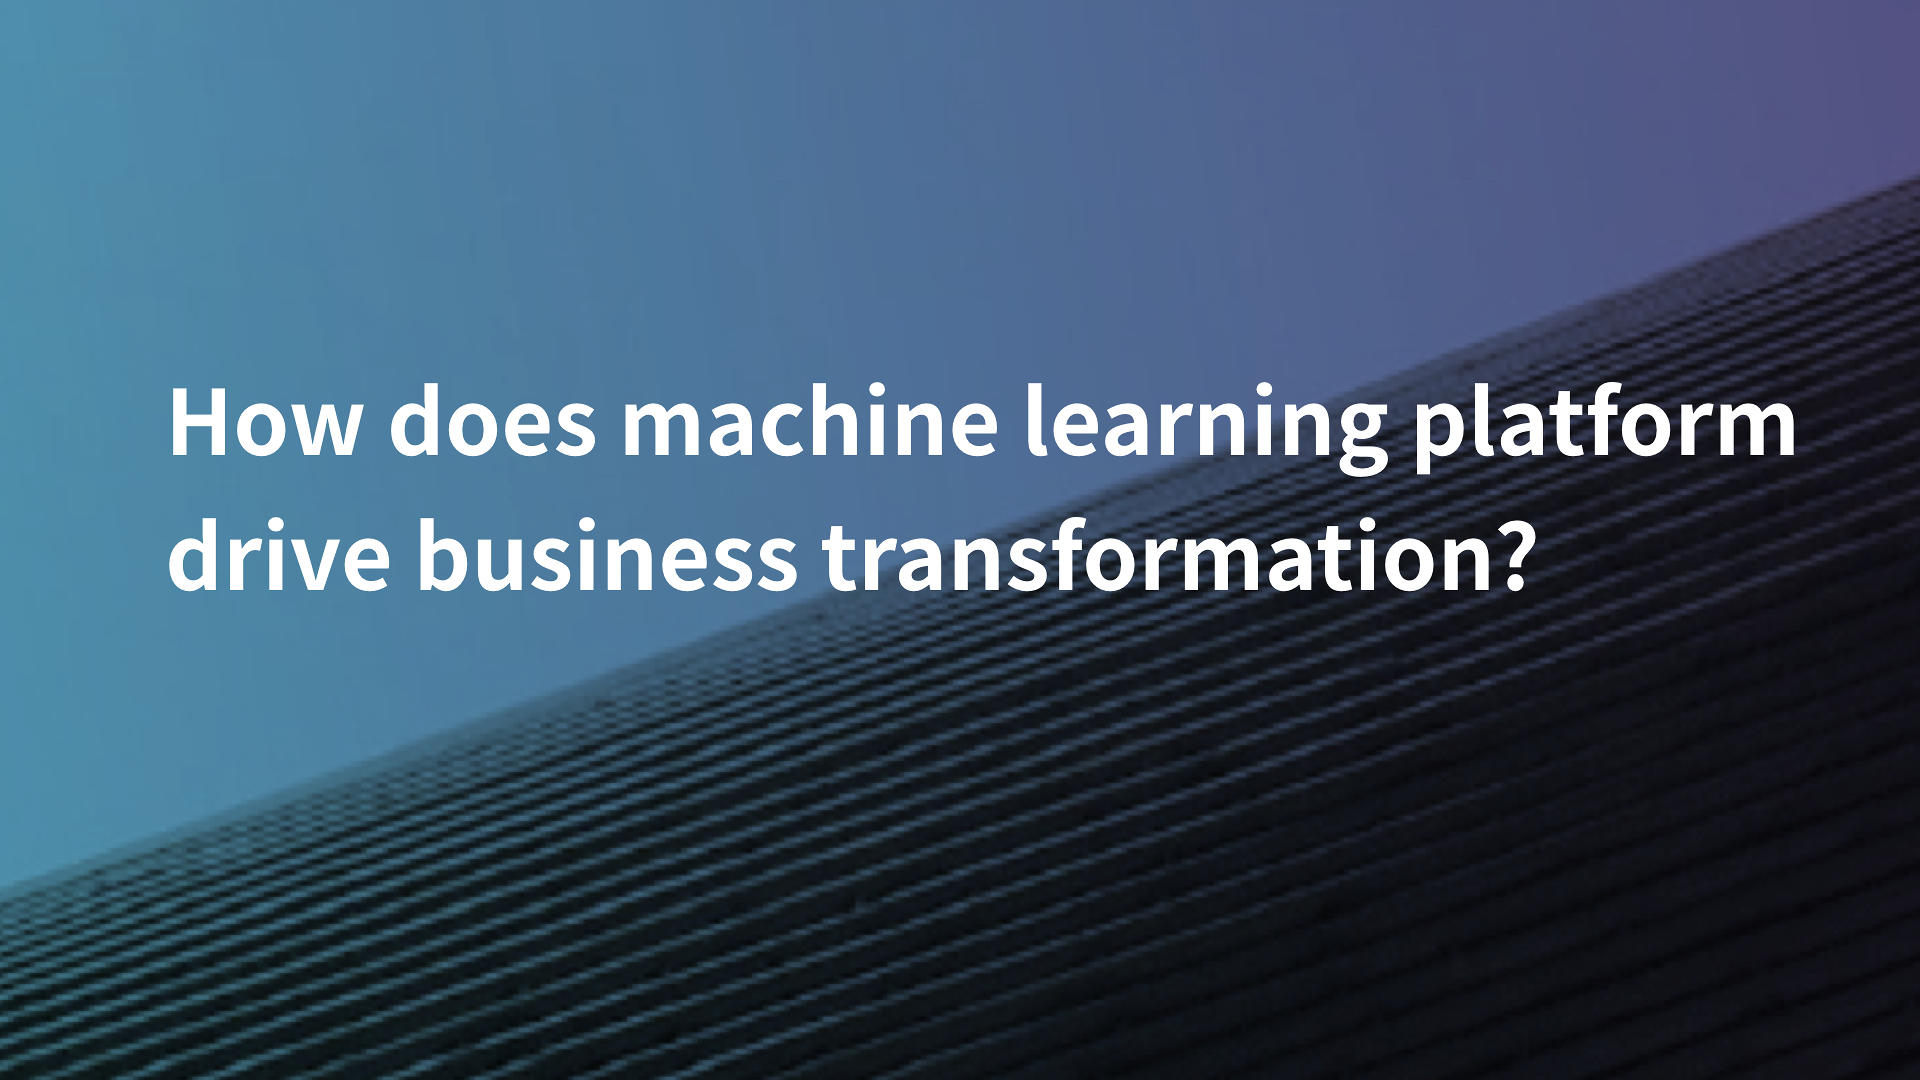 How does machine learning platform drive business transformation?